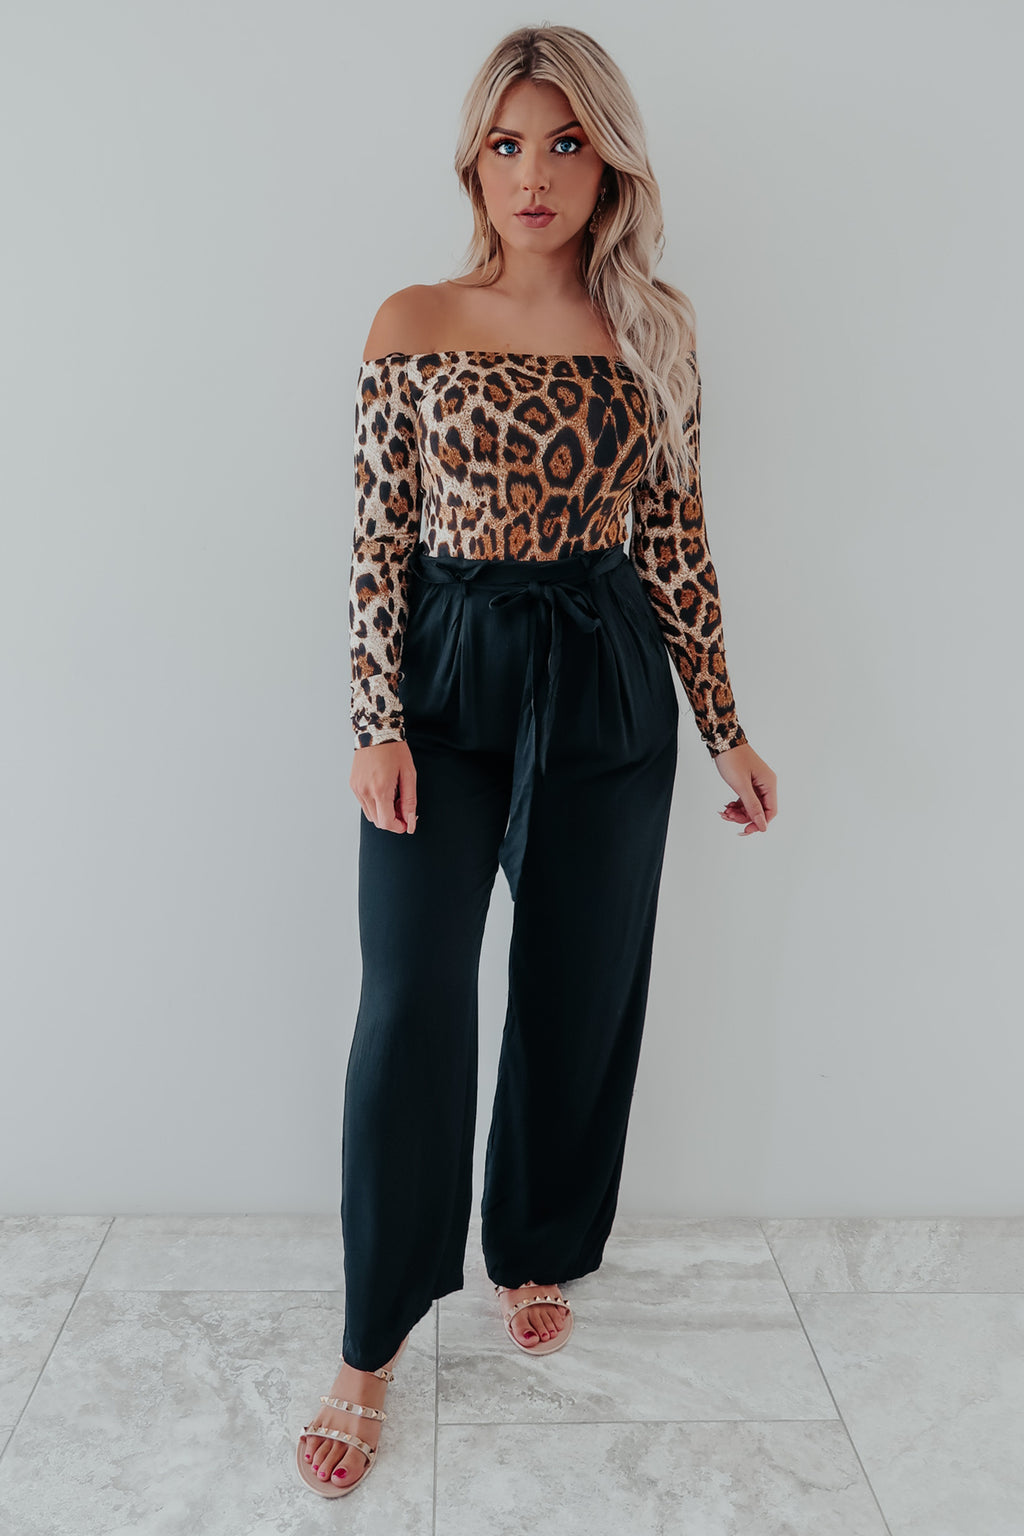 Be On Your Way Jumper: Cheetah/Black